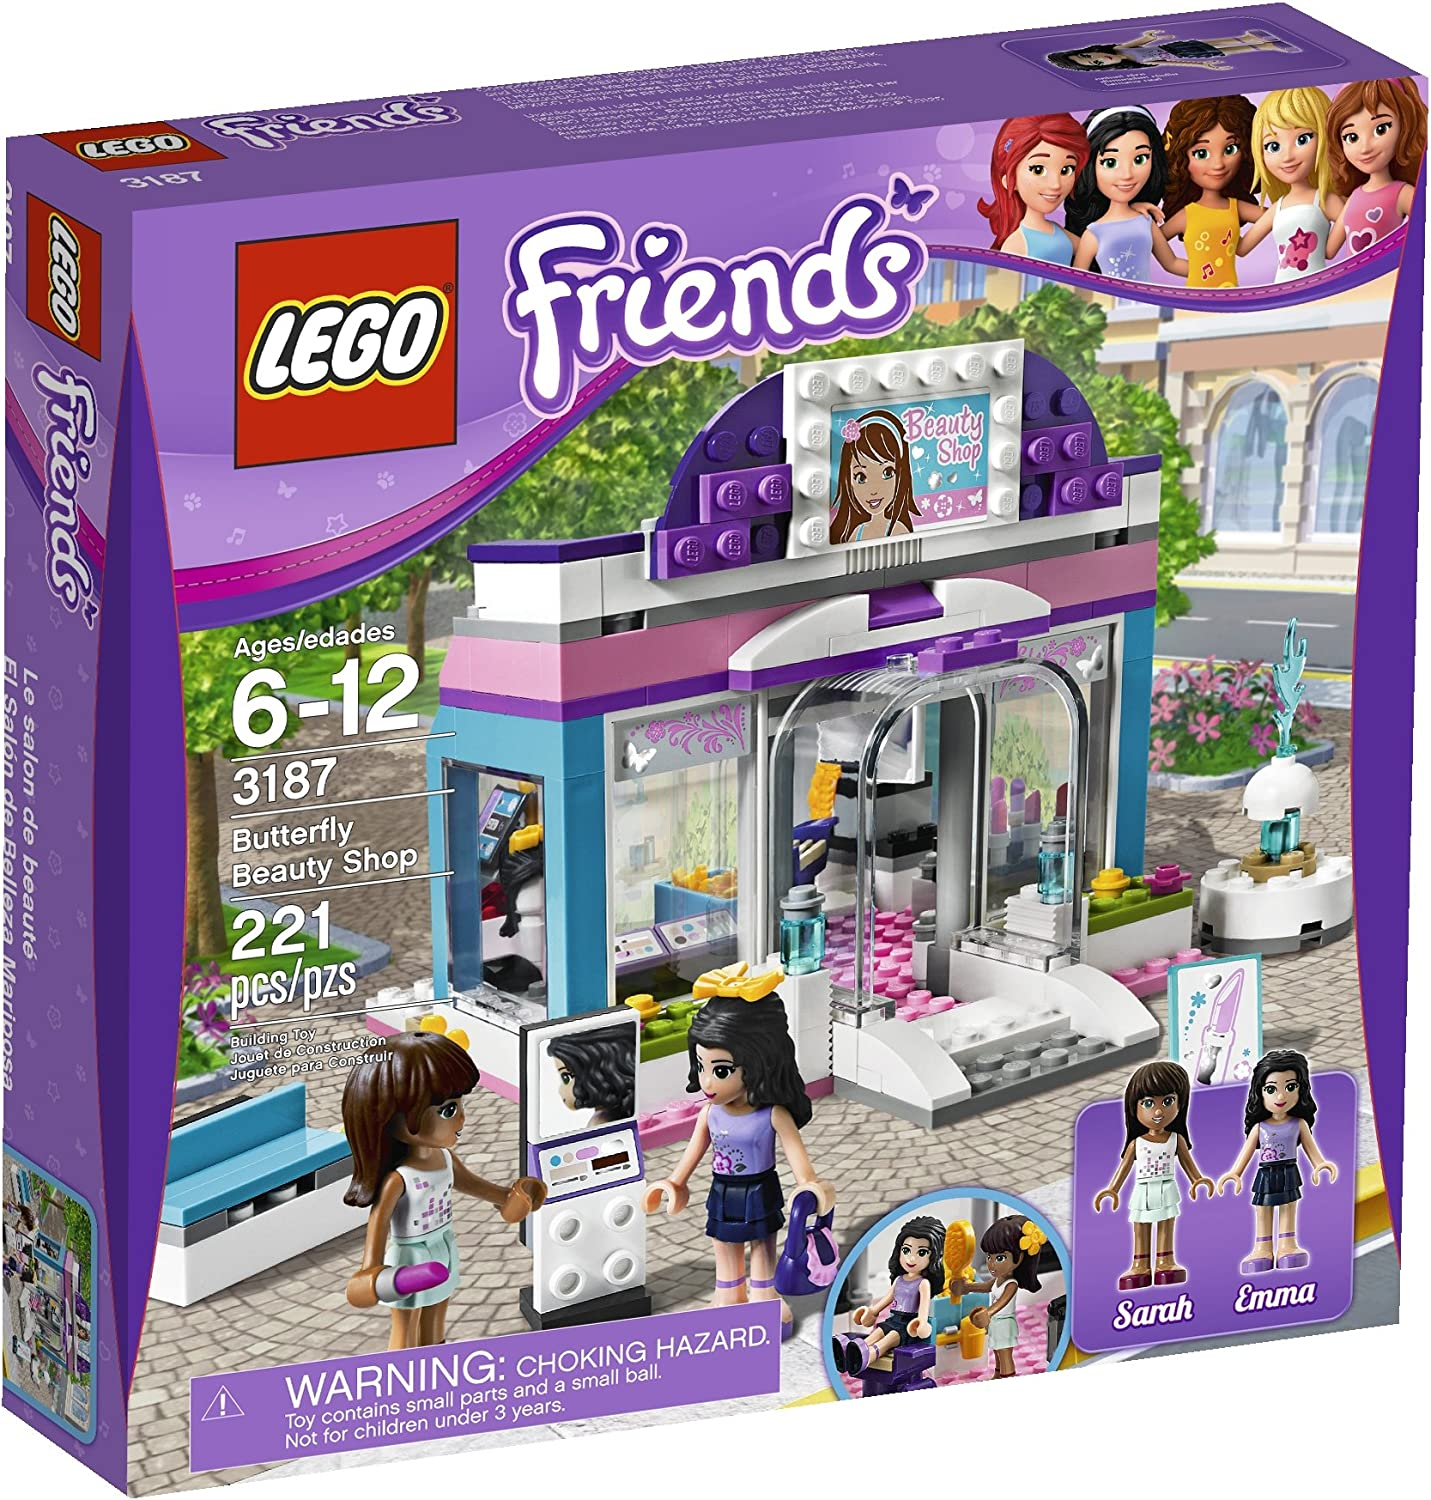 LEGO Friends Butterfly Beauty Shop 3187 by LEGO